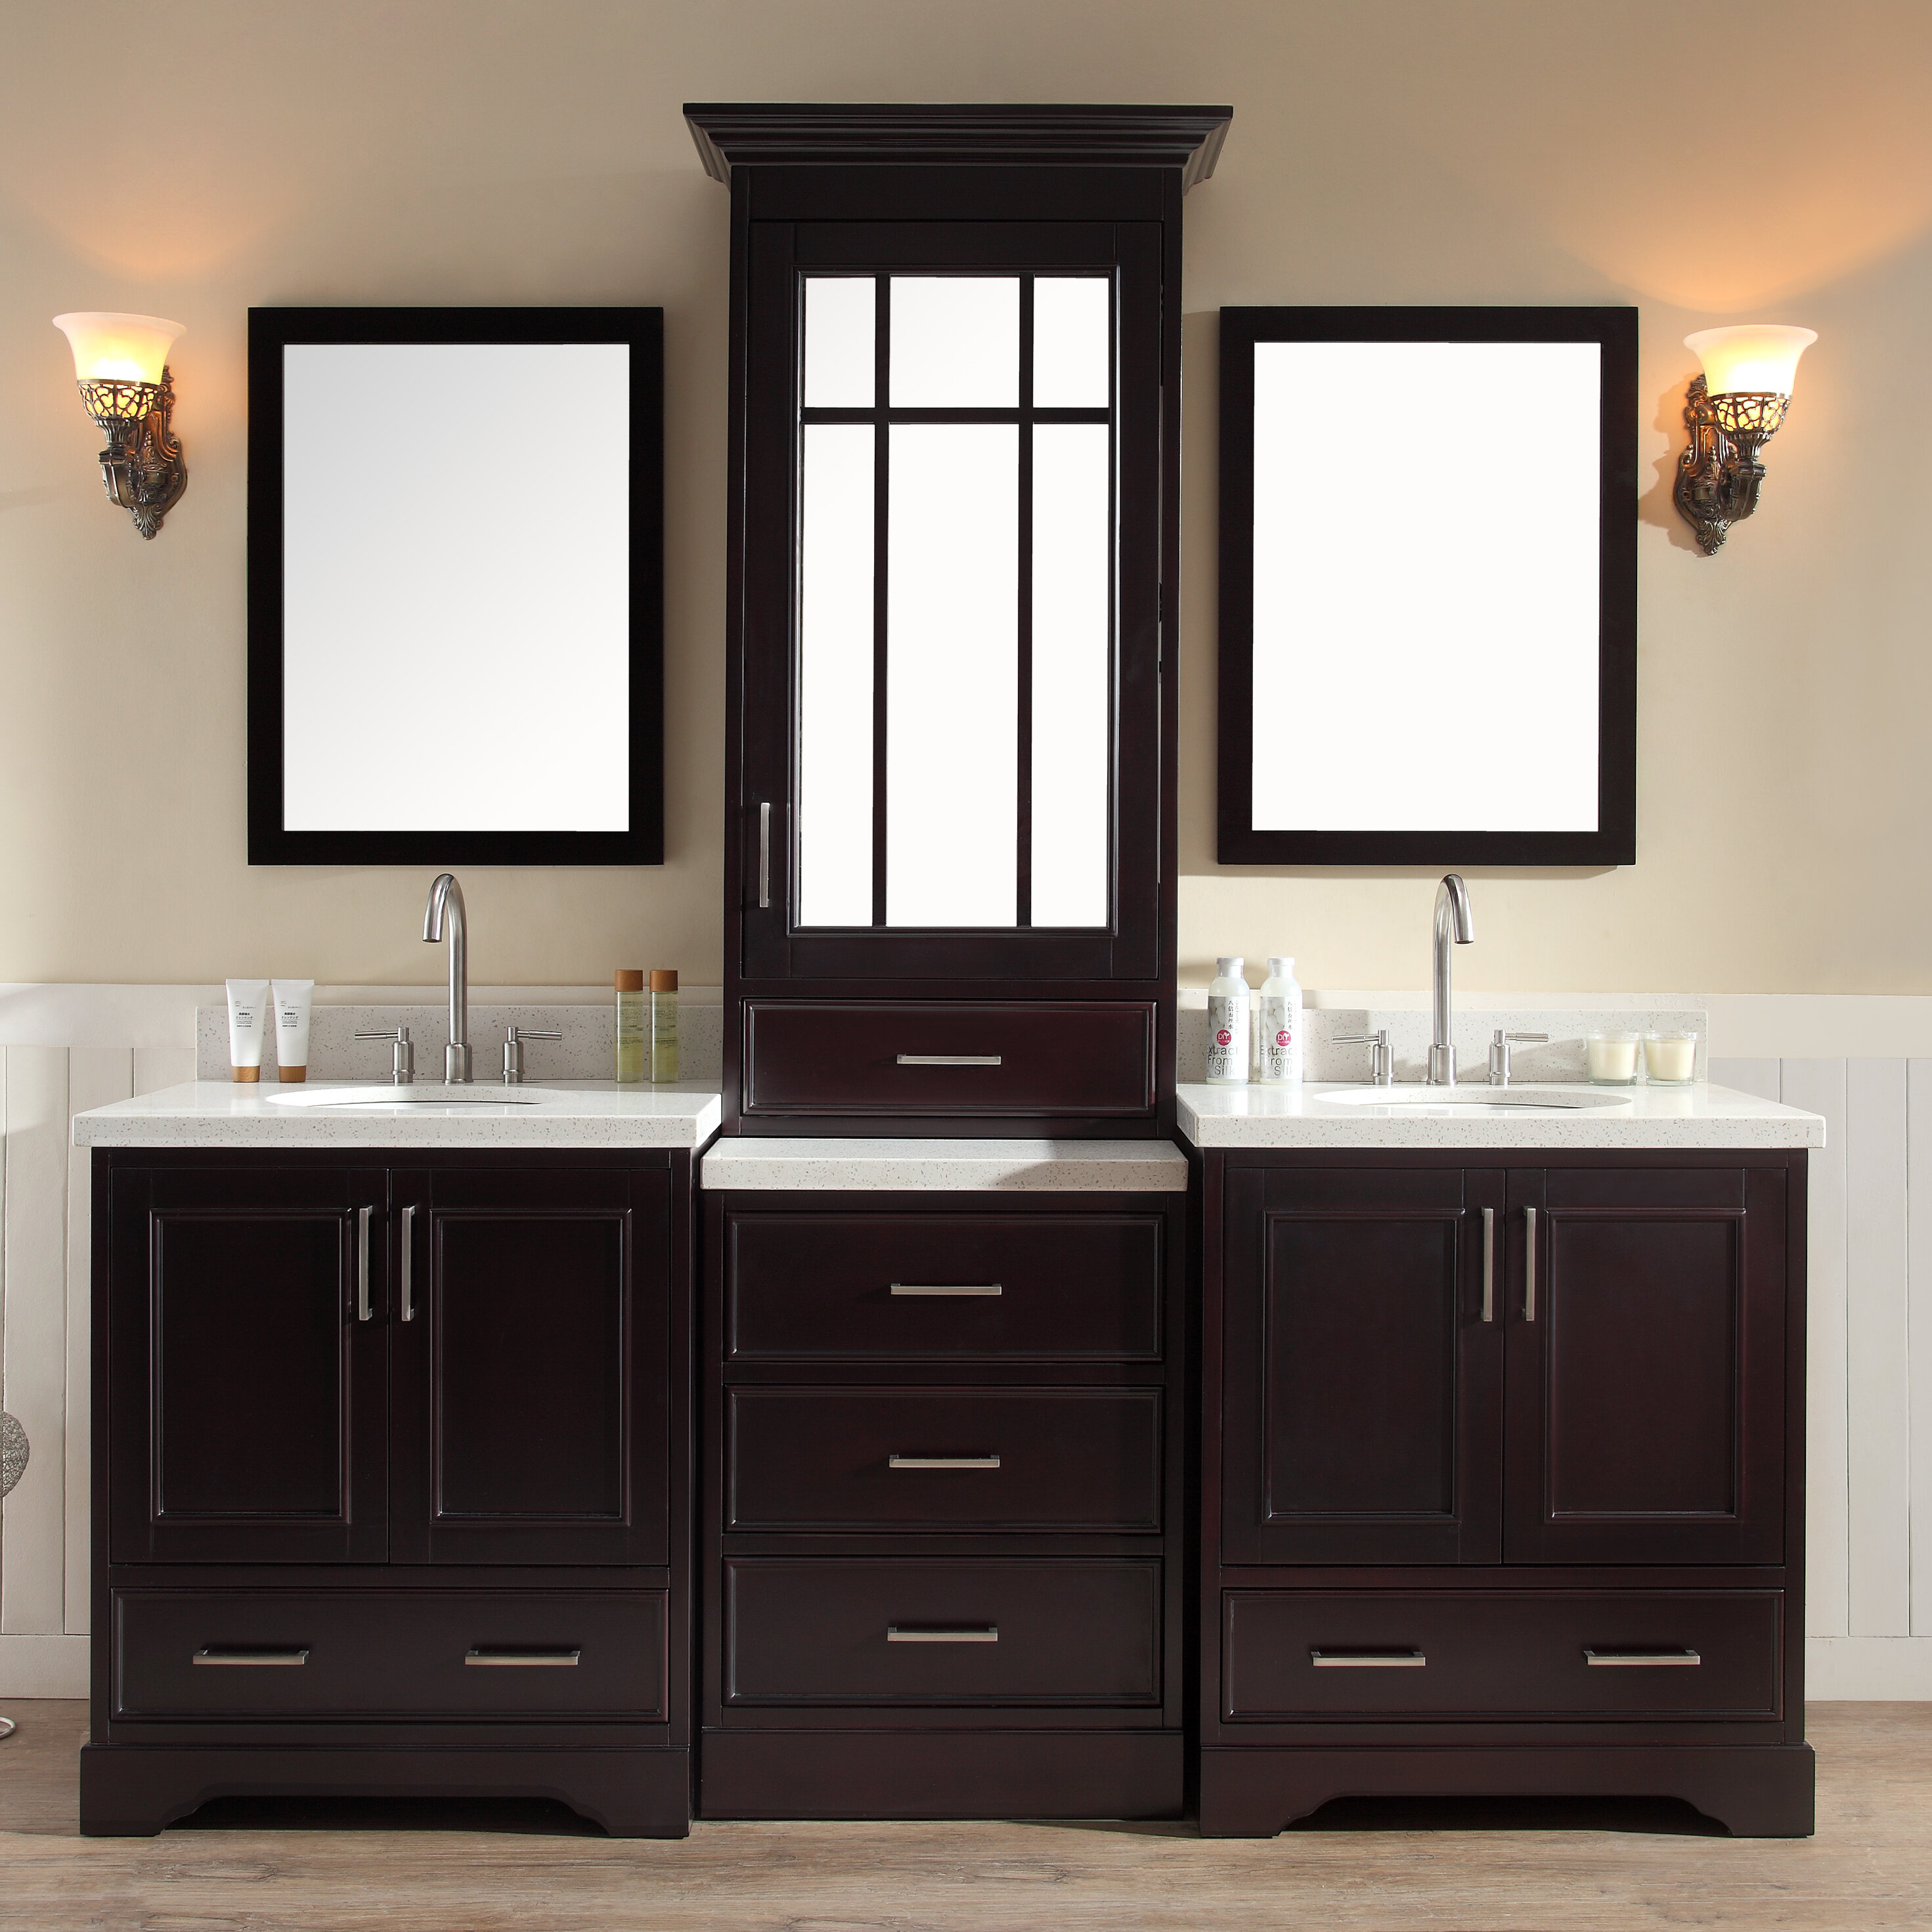 Darby Home Co Geraldina 85 Double Sink Vanity Set With Mirror Reviews Wayfair